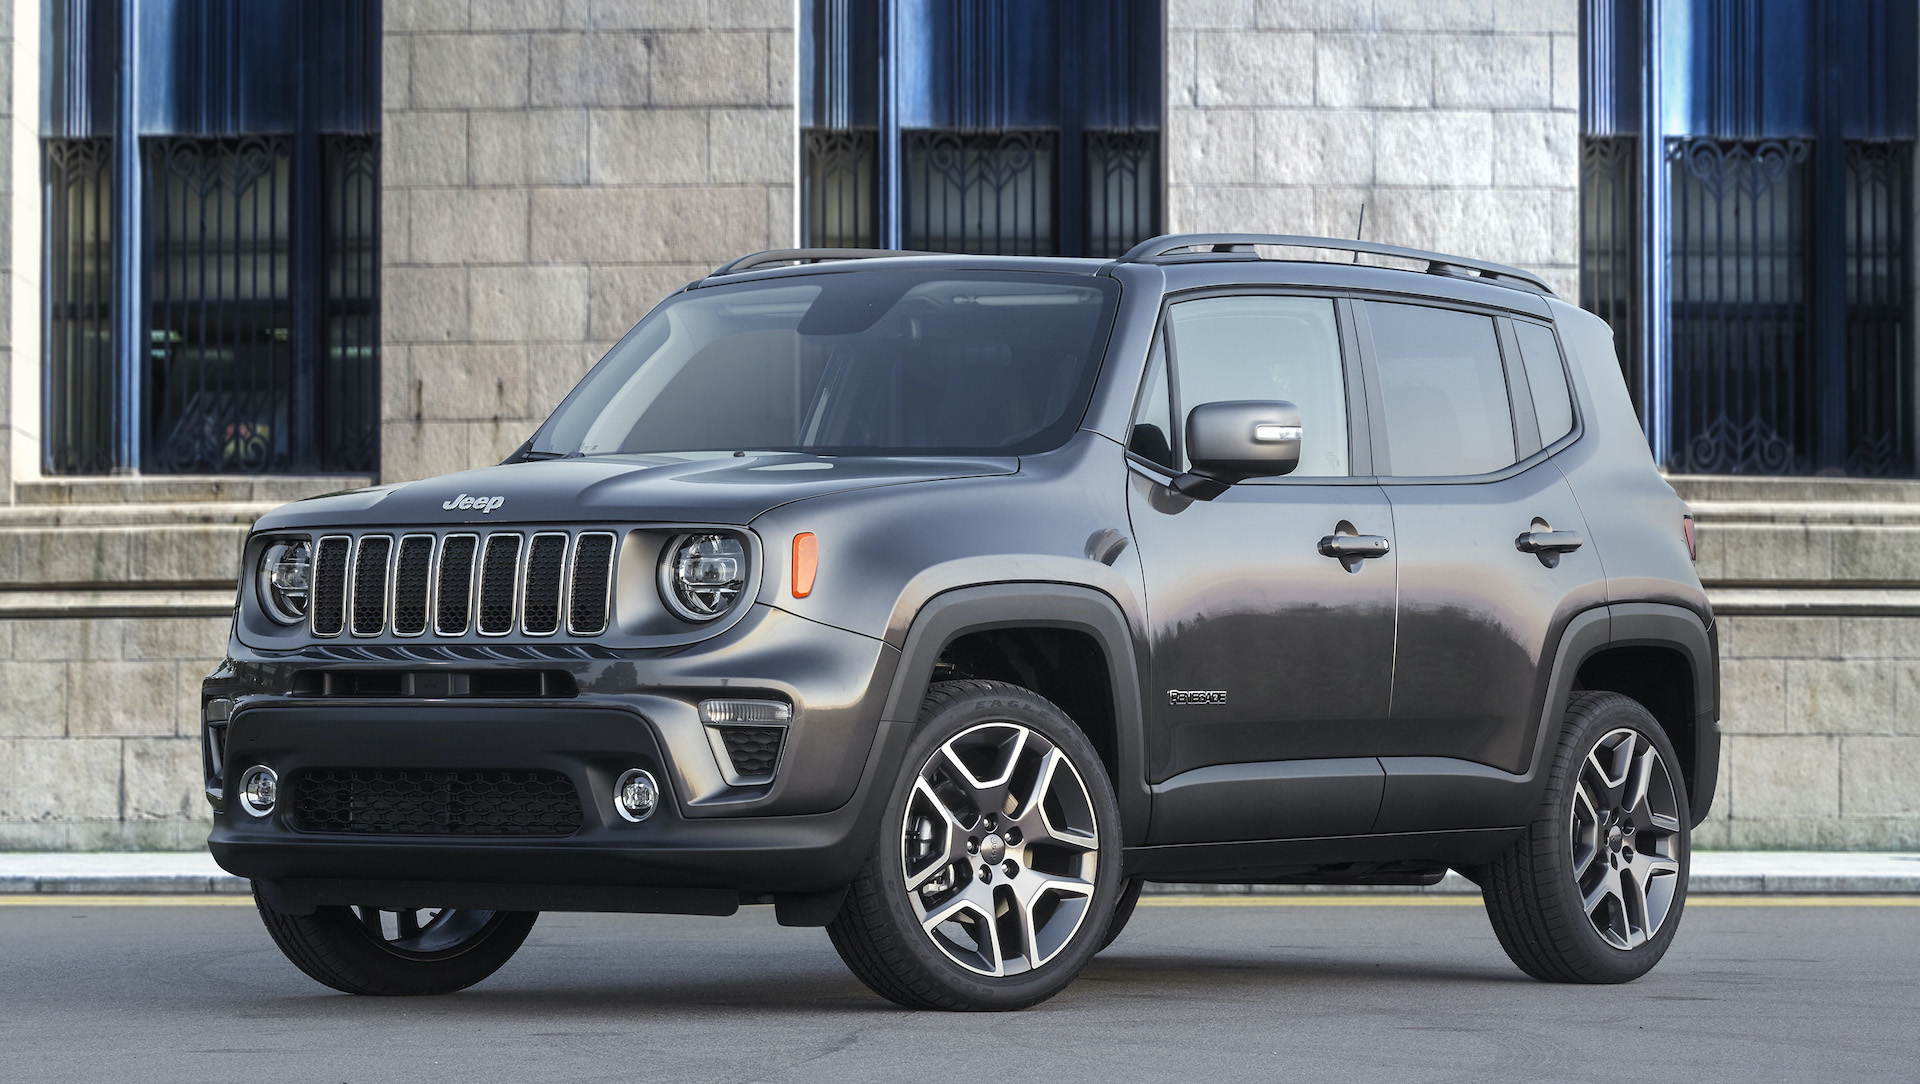 2020 Jeep Renegade Research New